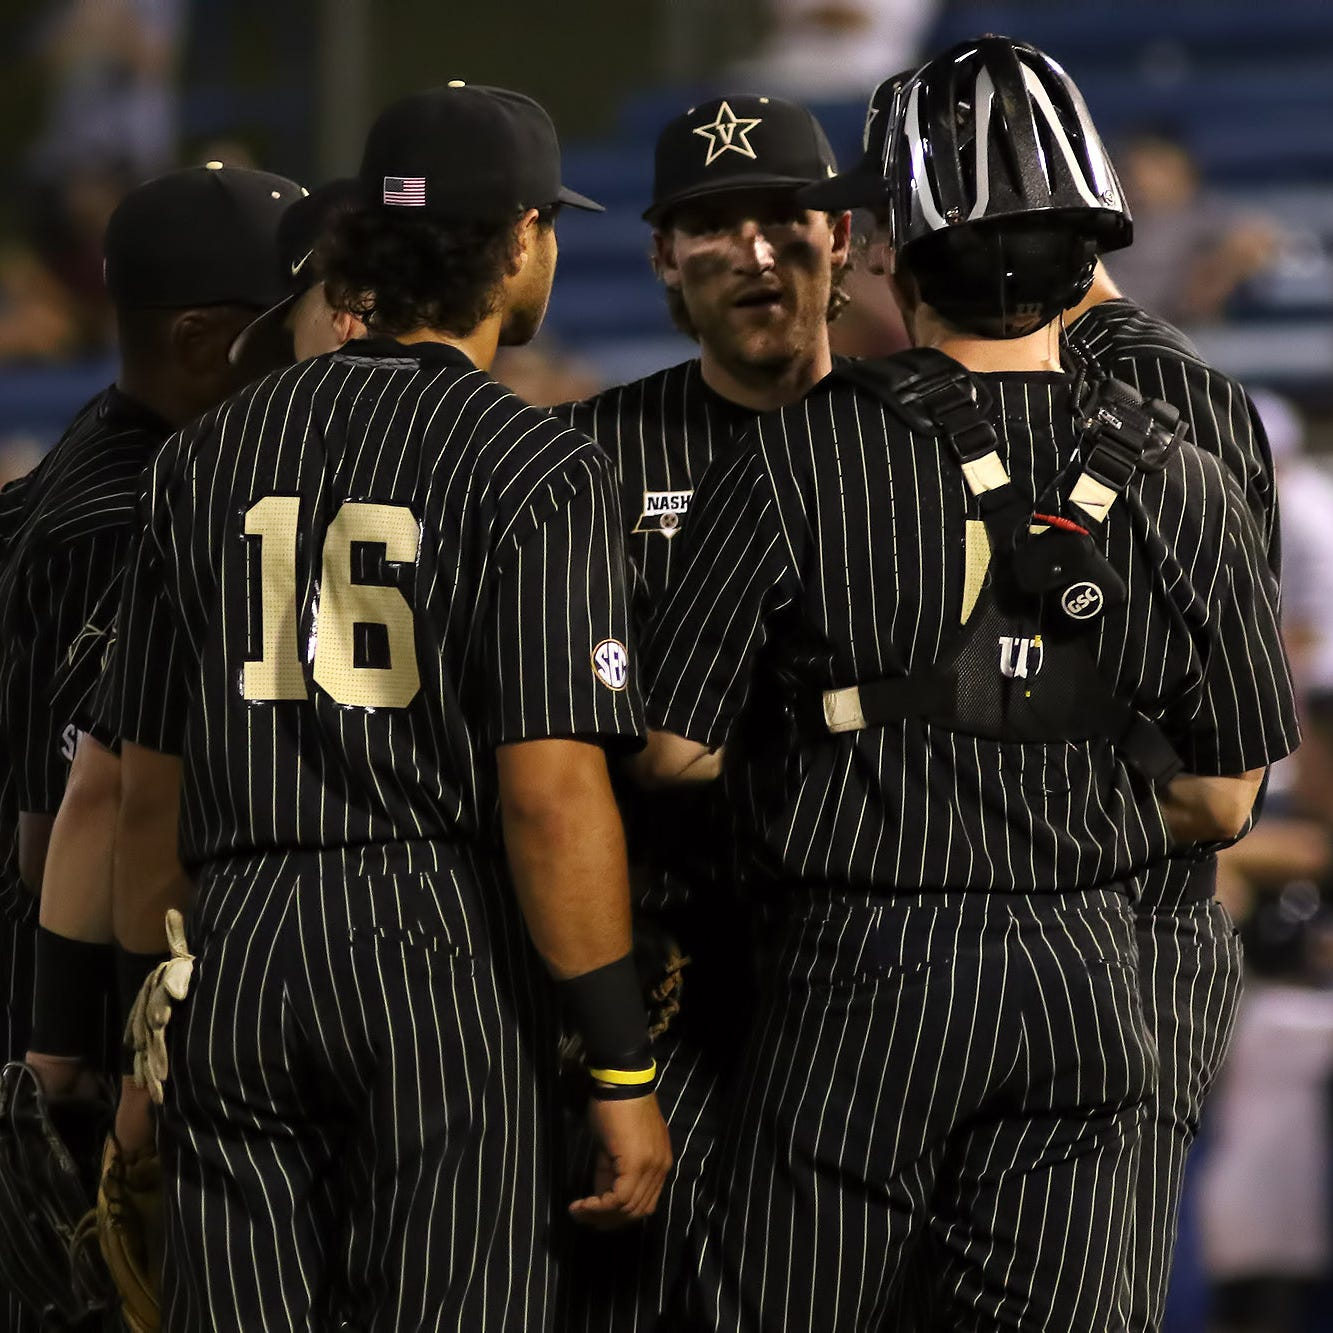 For Vanderbilt, is SEC Baseball Tournament harder than reaching College World Series?